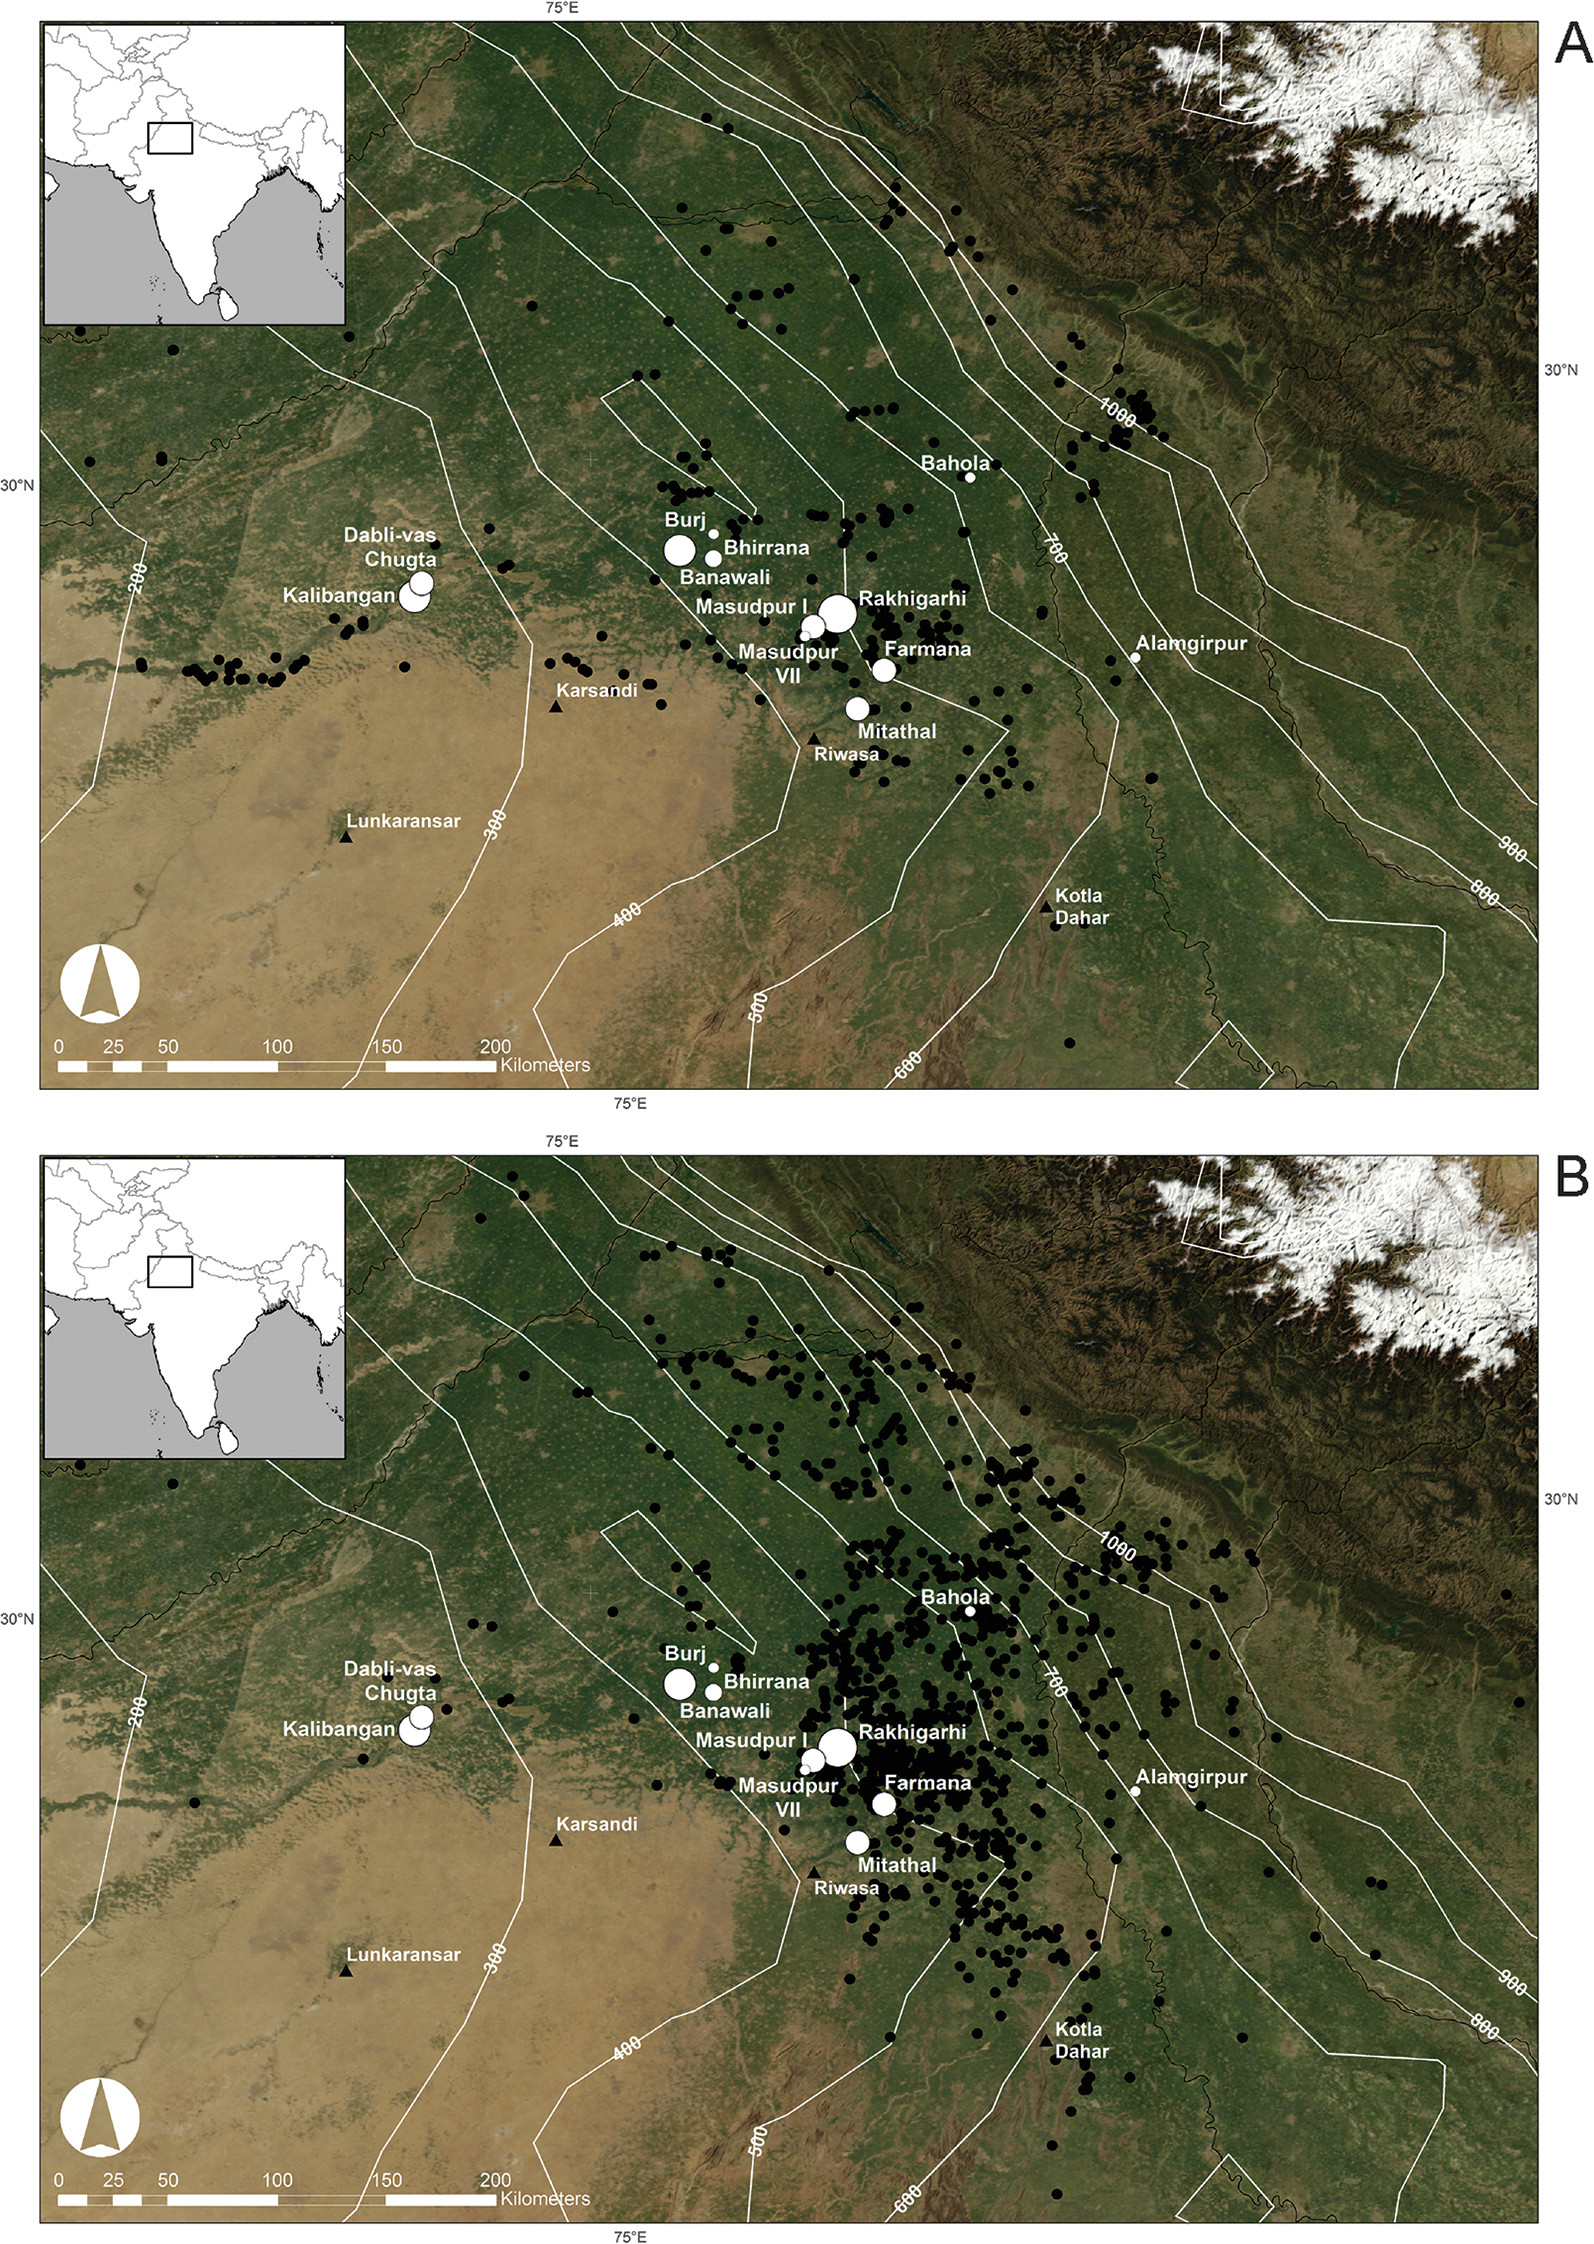 Here you can see distribution of urban-phase Indus settlements (A) and post-urban-phase Indus settlements (B) in northwest India and their relationship to mean annual rainfall (1900–2008). It's clear that sites moved eastward over time, possibly to capture more rain as the monsoons weakened to the state they're in today. Major Indus sites and sites investigated by the Land, Water and Settlement project are shown in white.